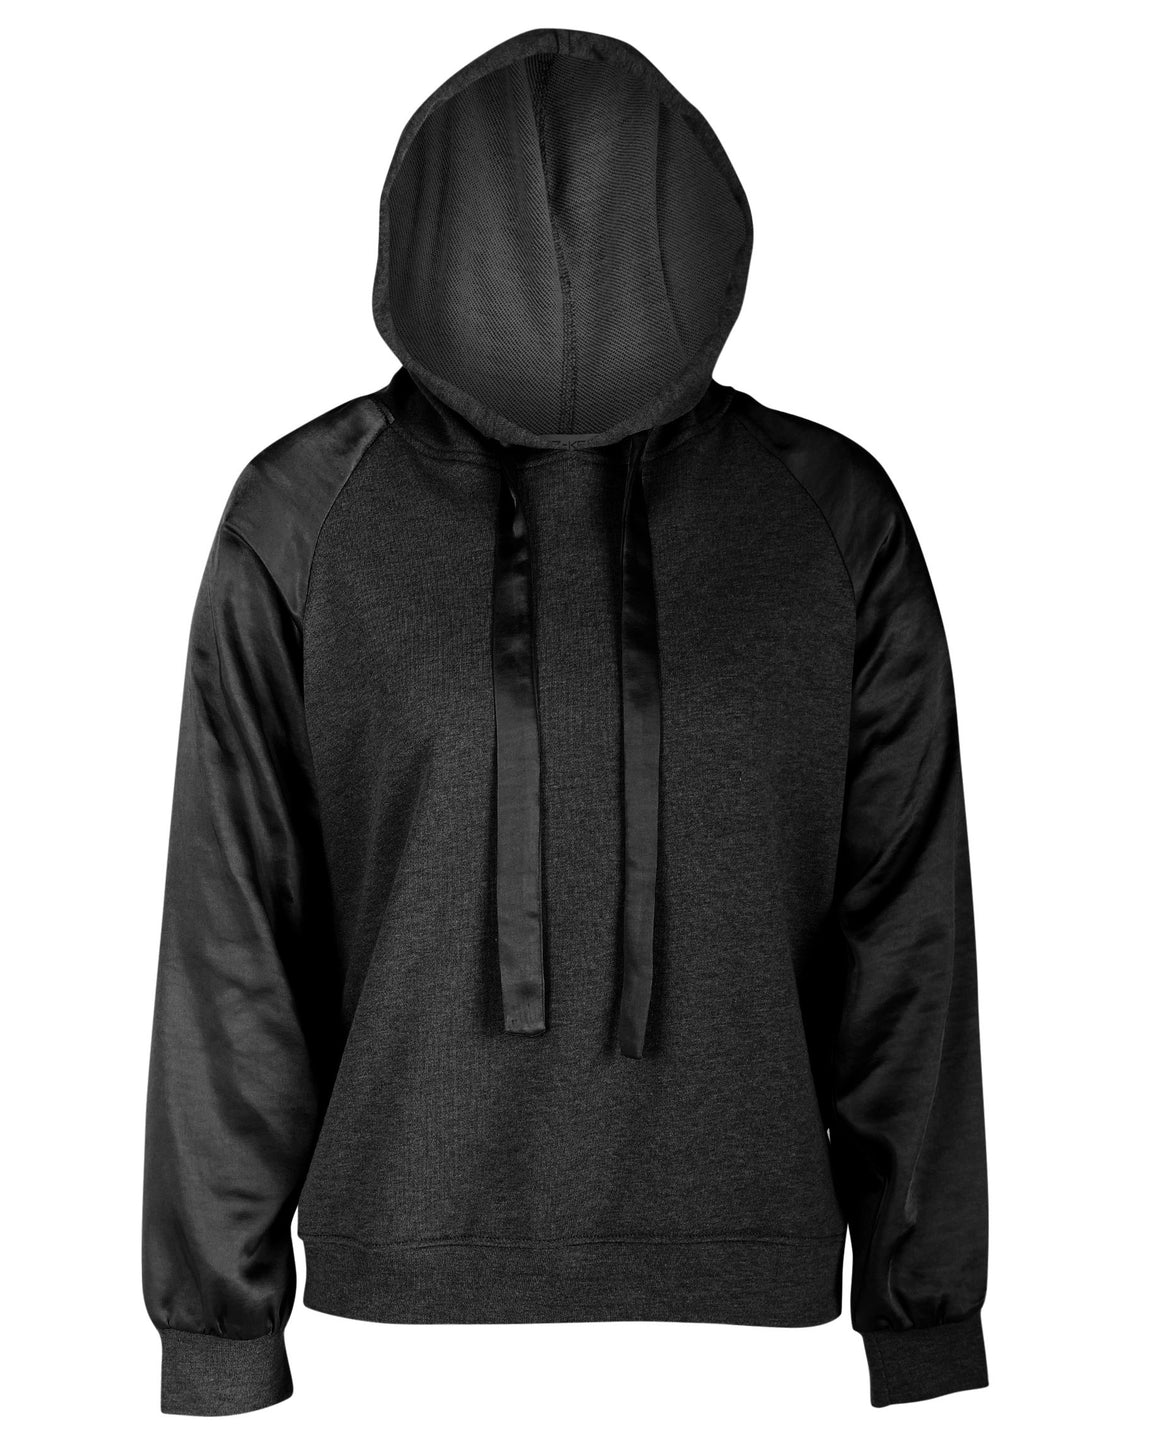 Reminder Hoodie Black | Shop Ketz-ke at Wallace & Gibbs NZ